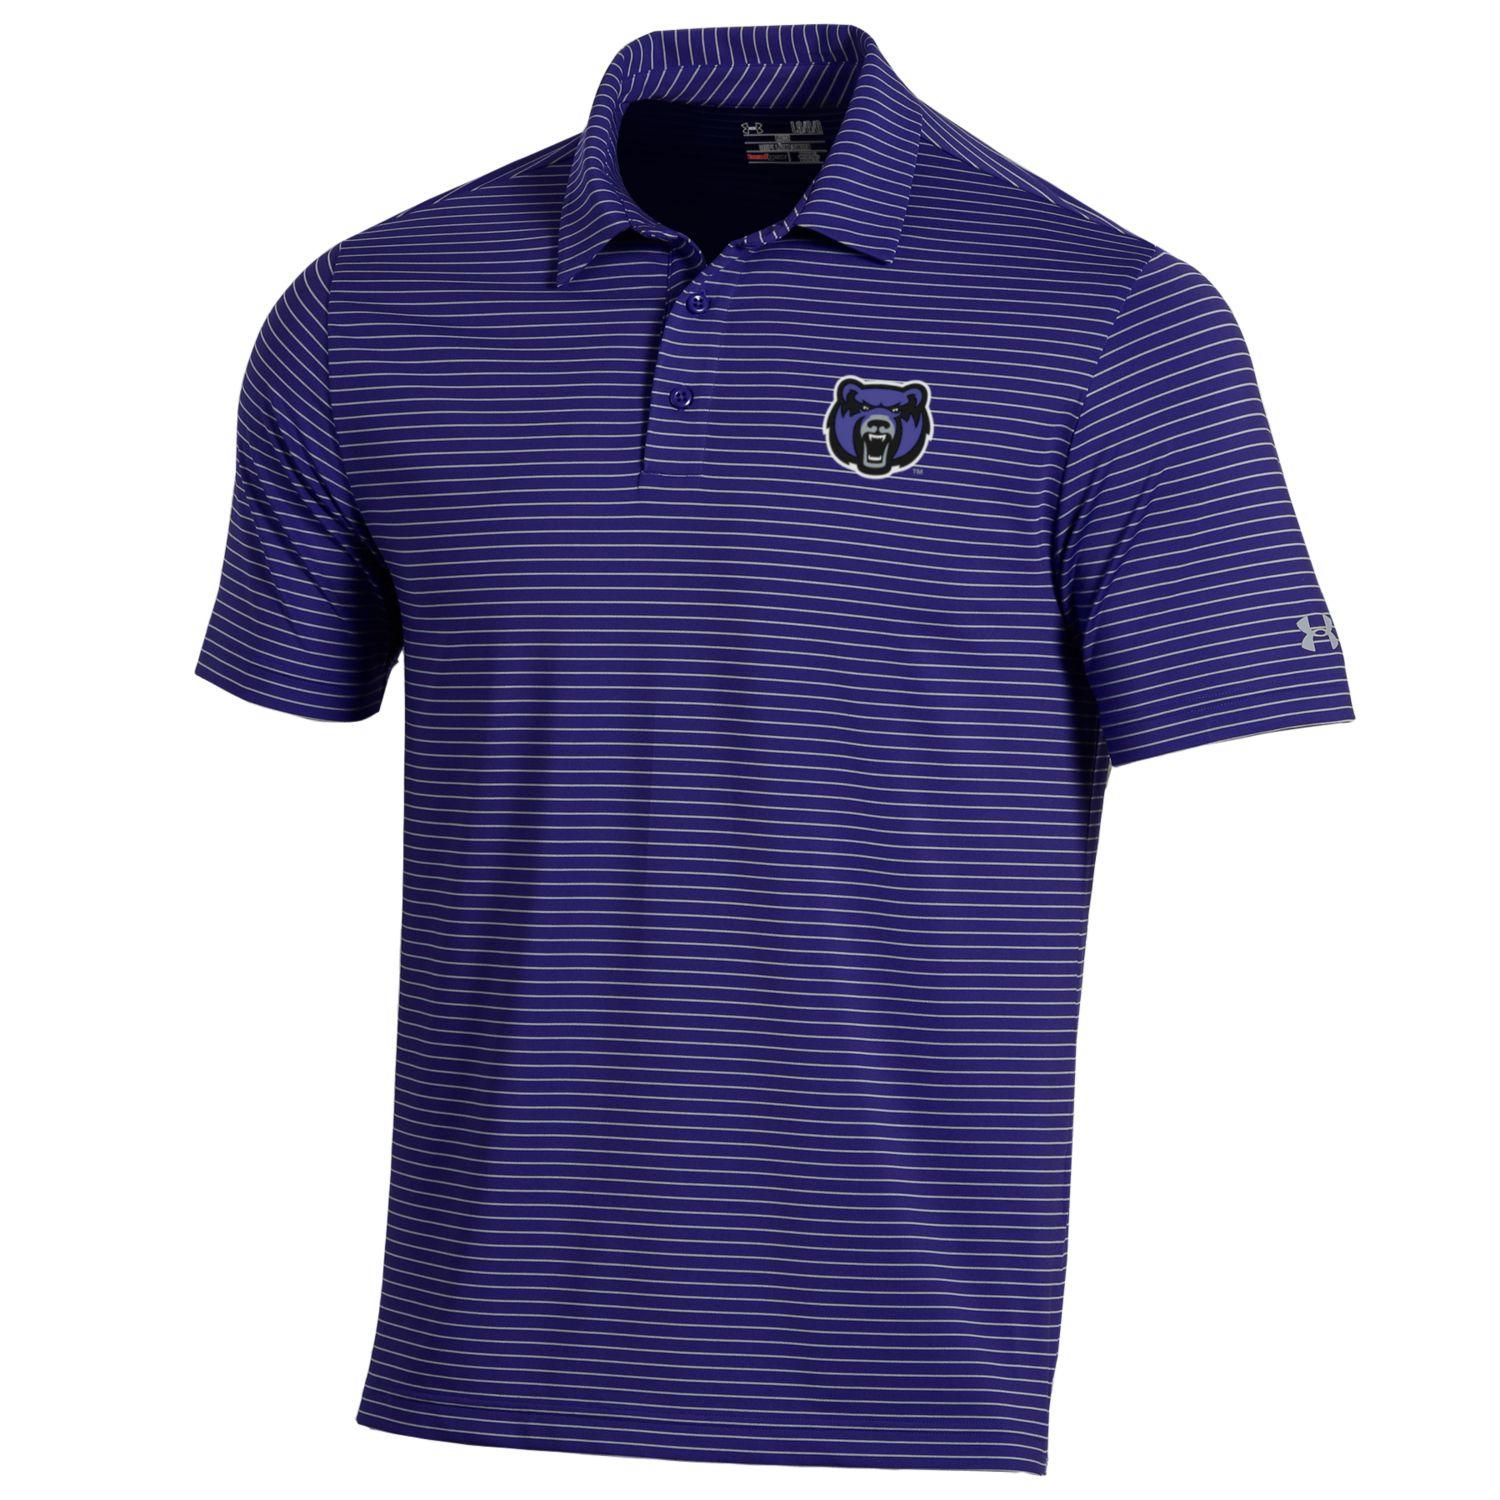 Playoff Stripe Polo